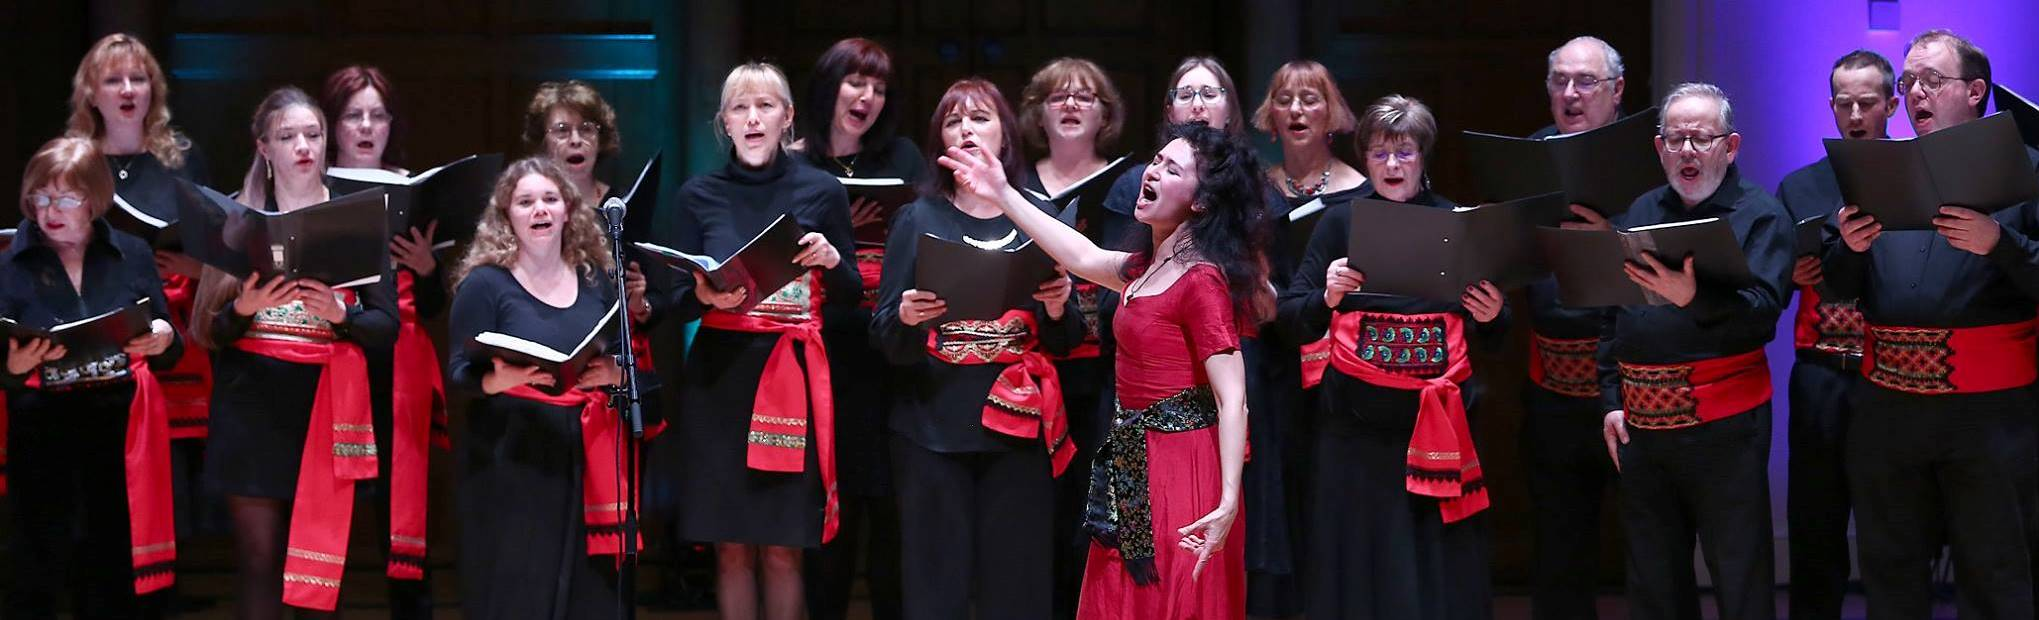 russian male choral concerts